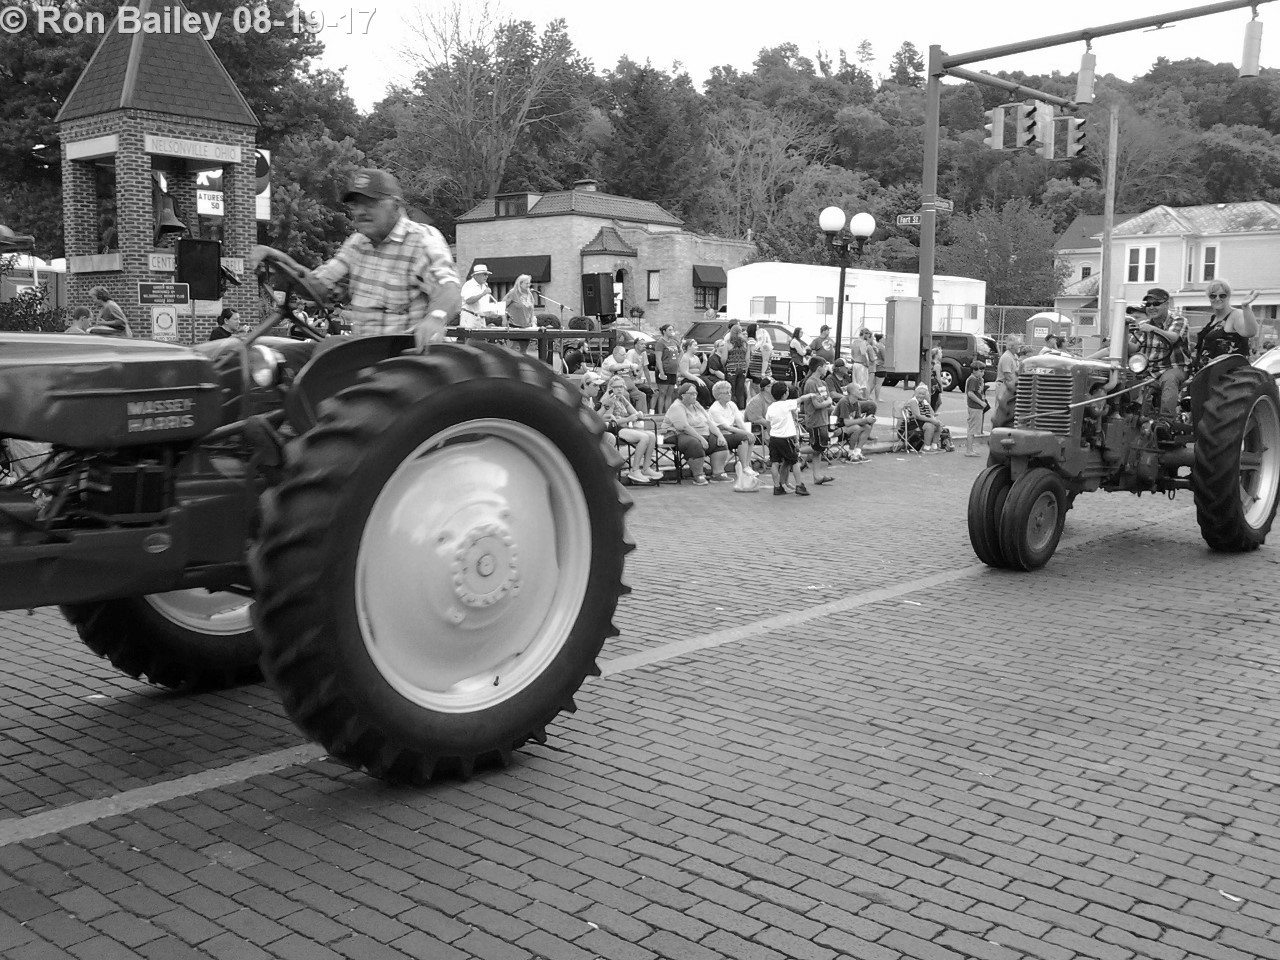 Parade of the Hills 2017 - Grand Parade BW 8-19-2017 7-15-28 PM